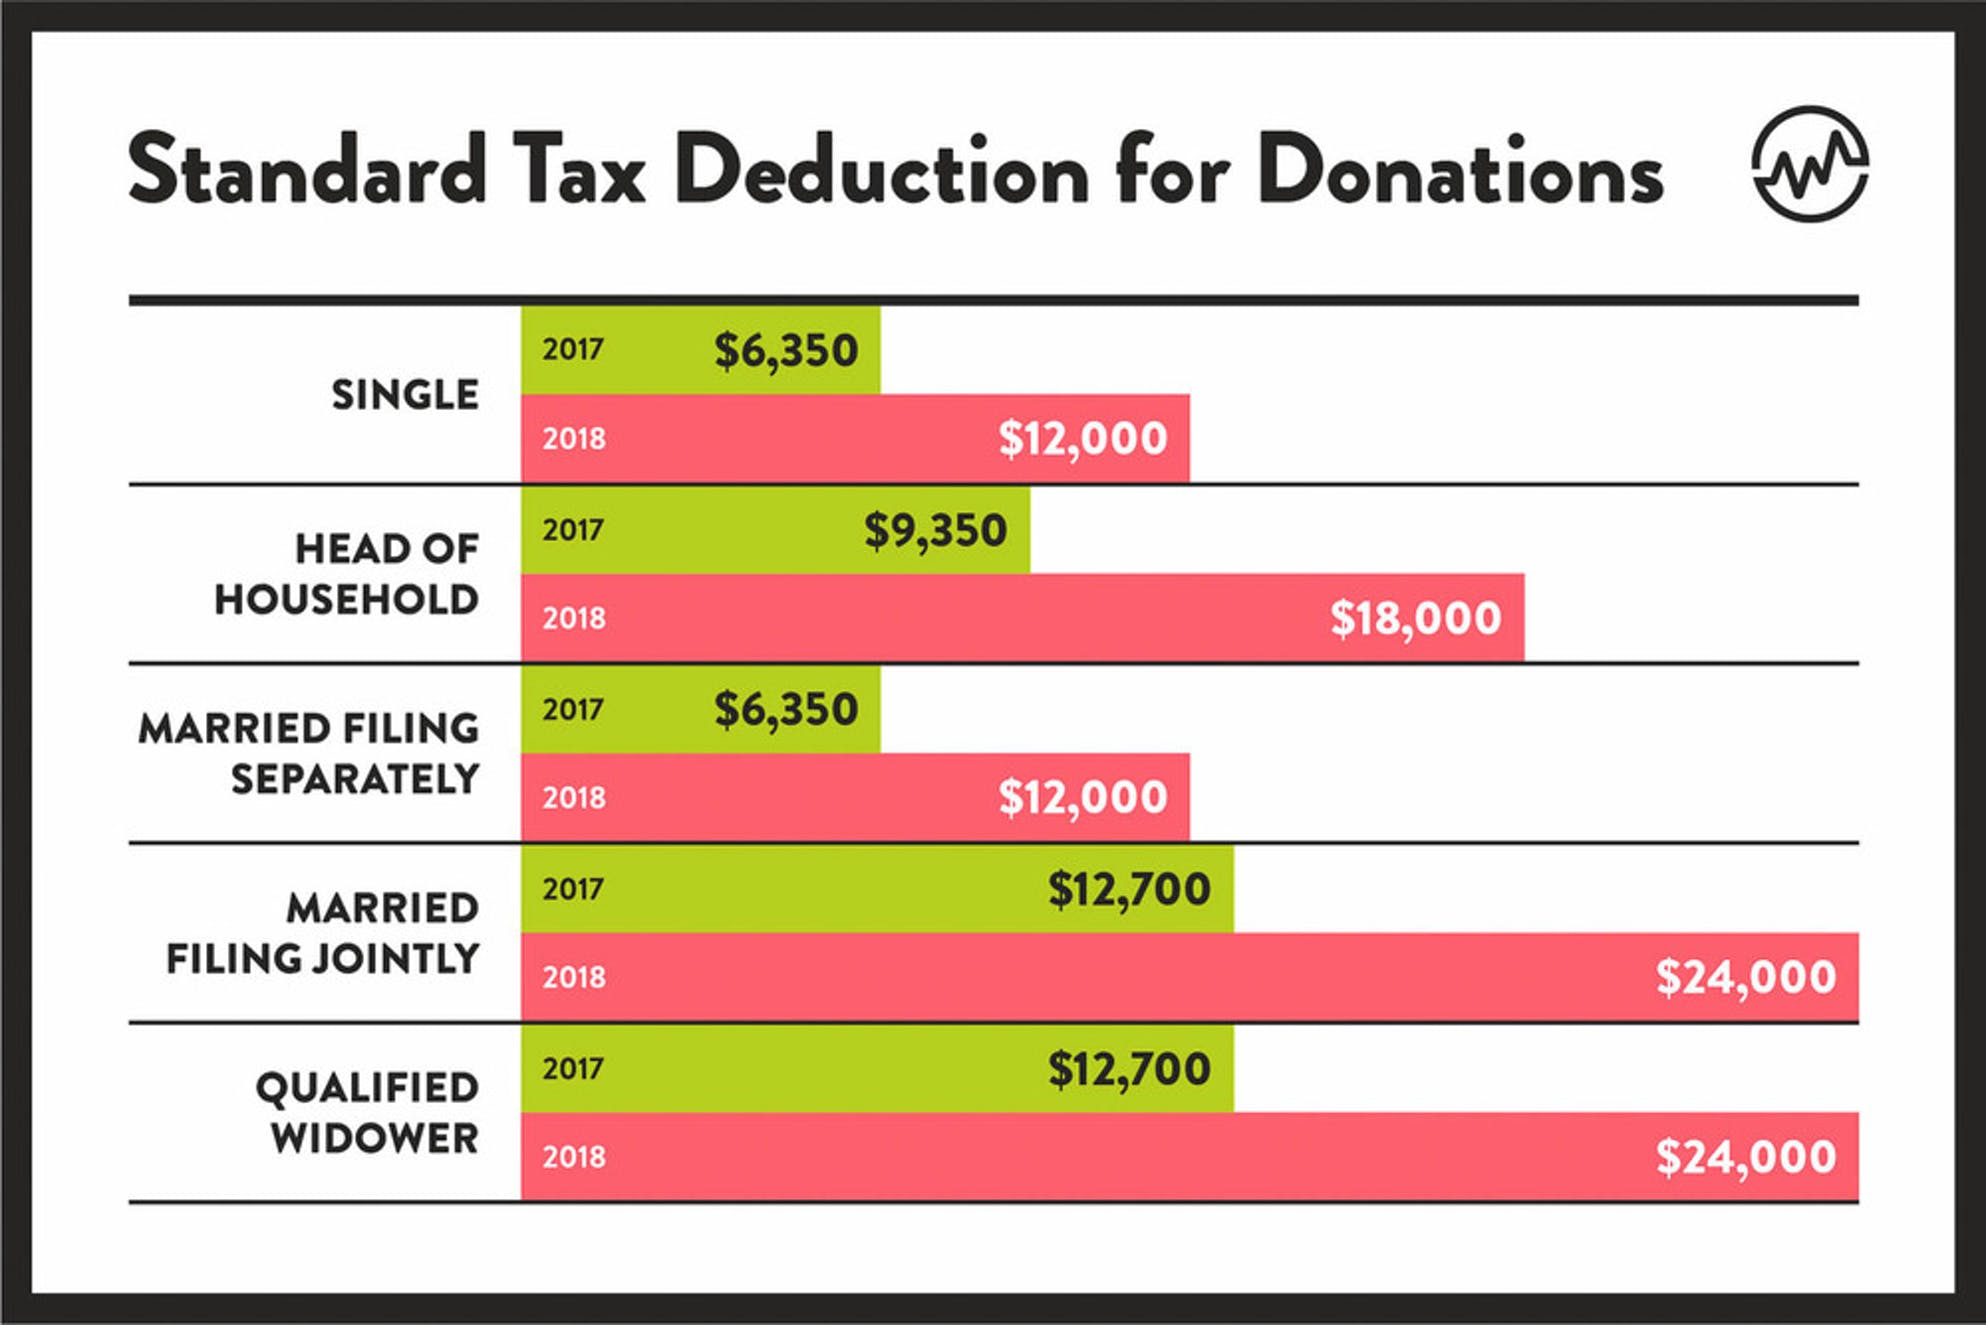 Standard tax deduction for donations depend on filing status